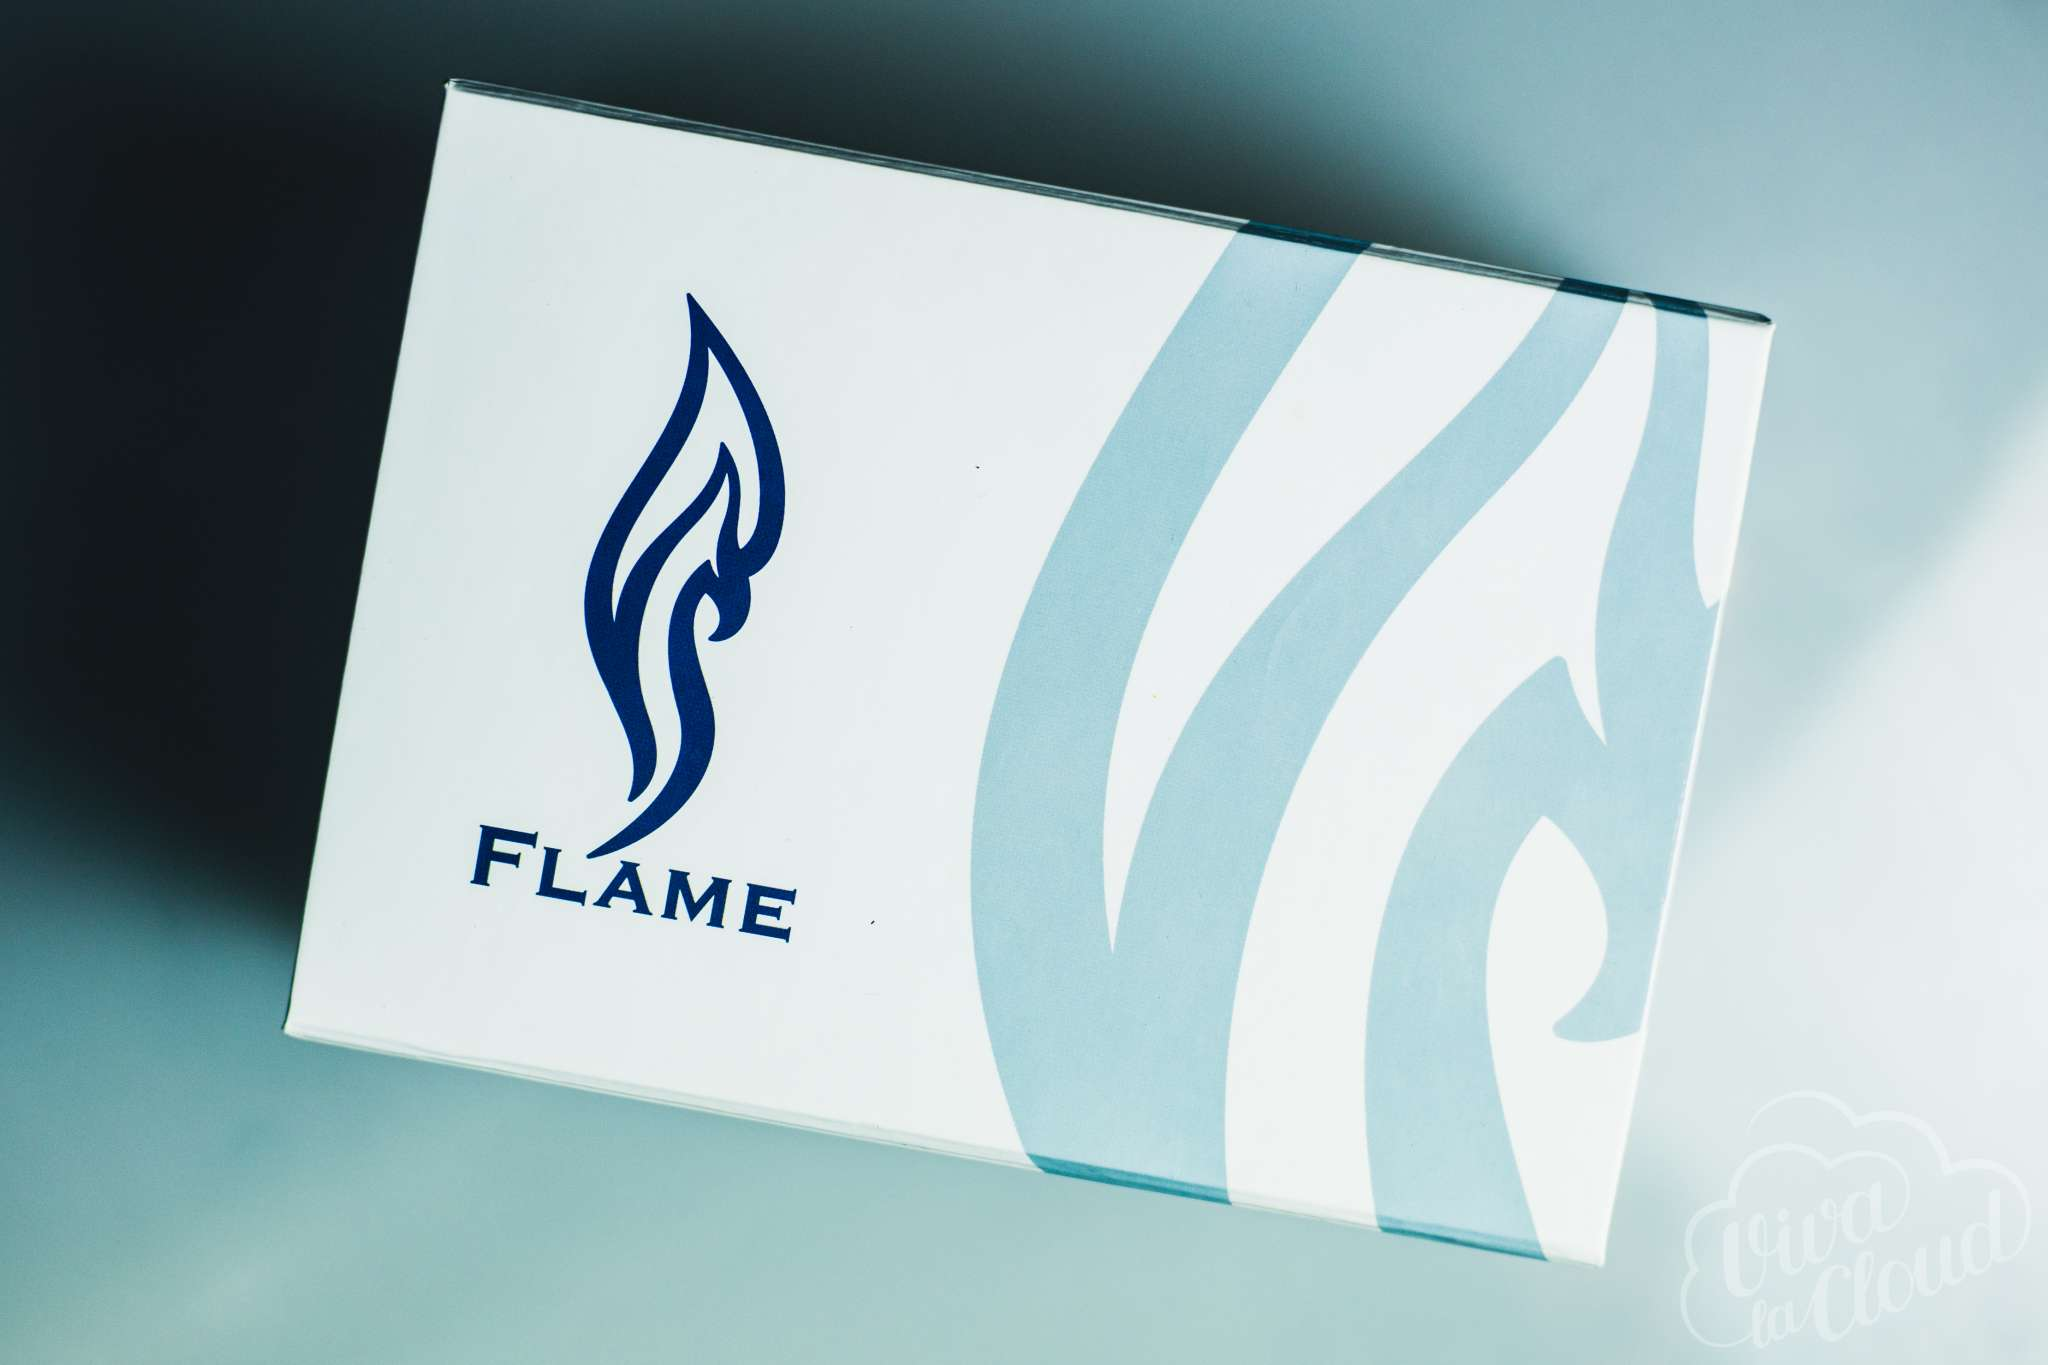 FLAME 8